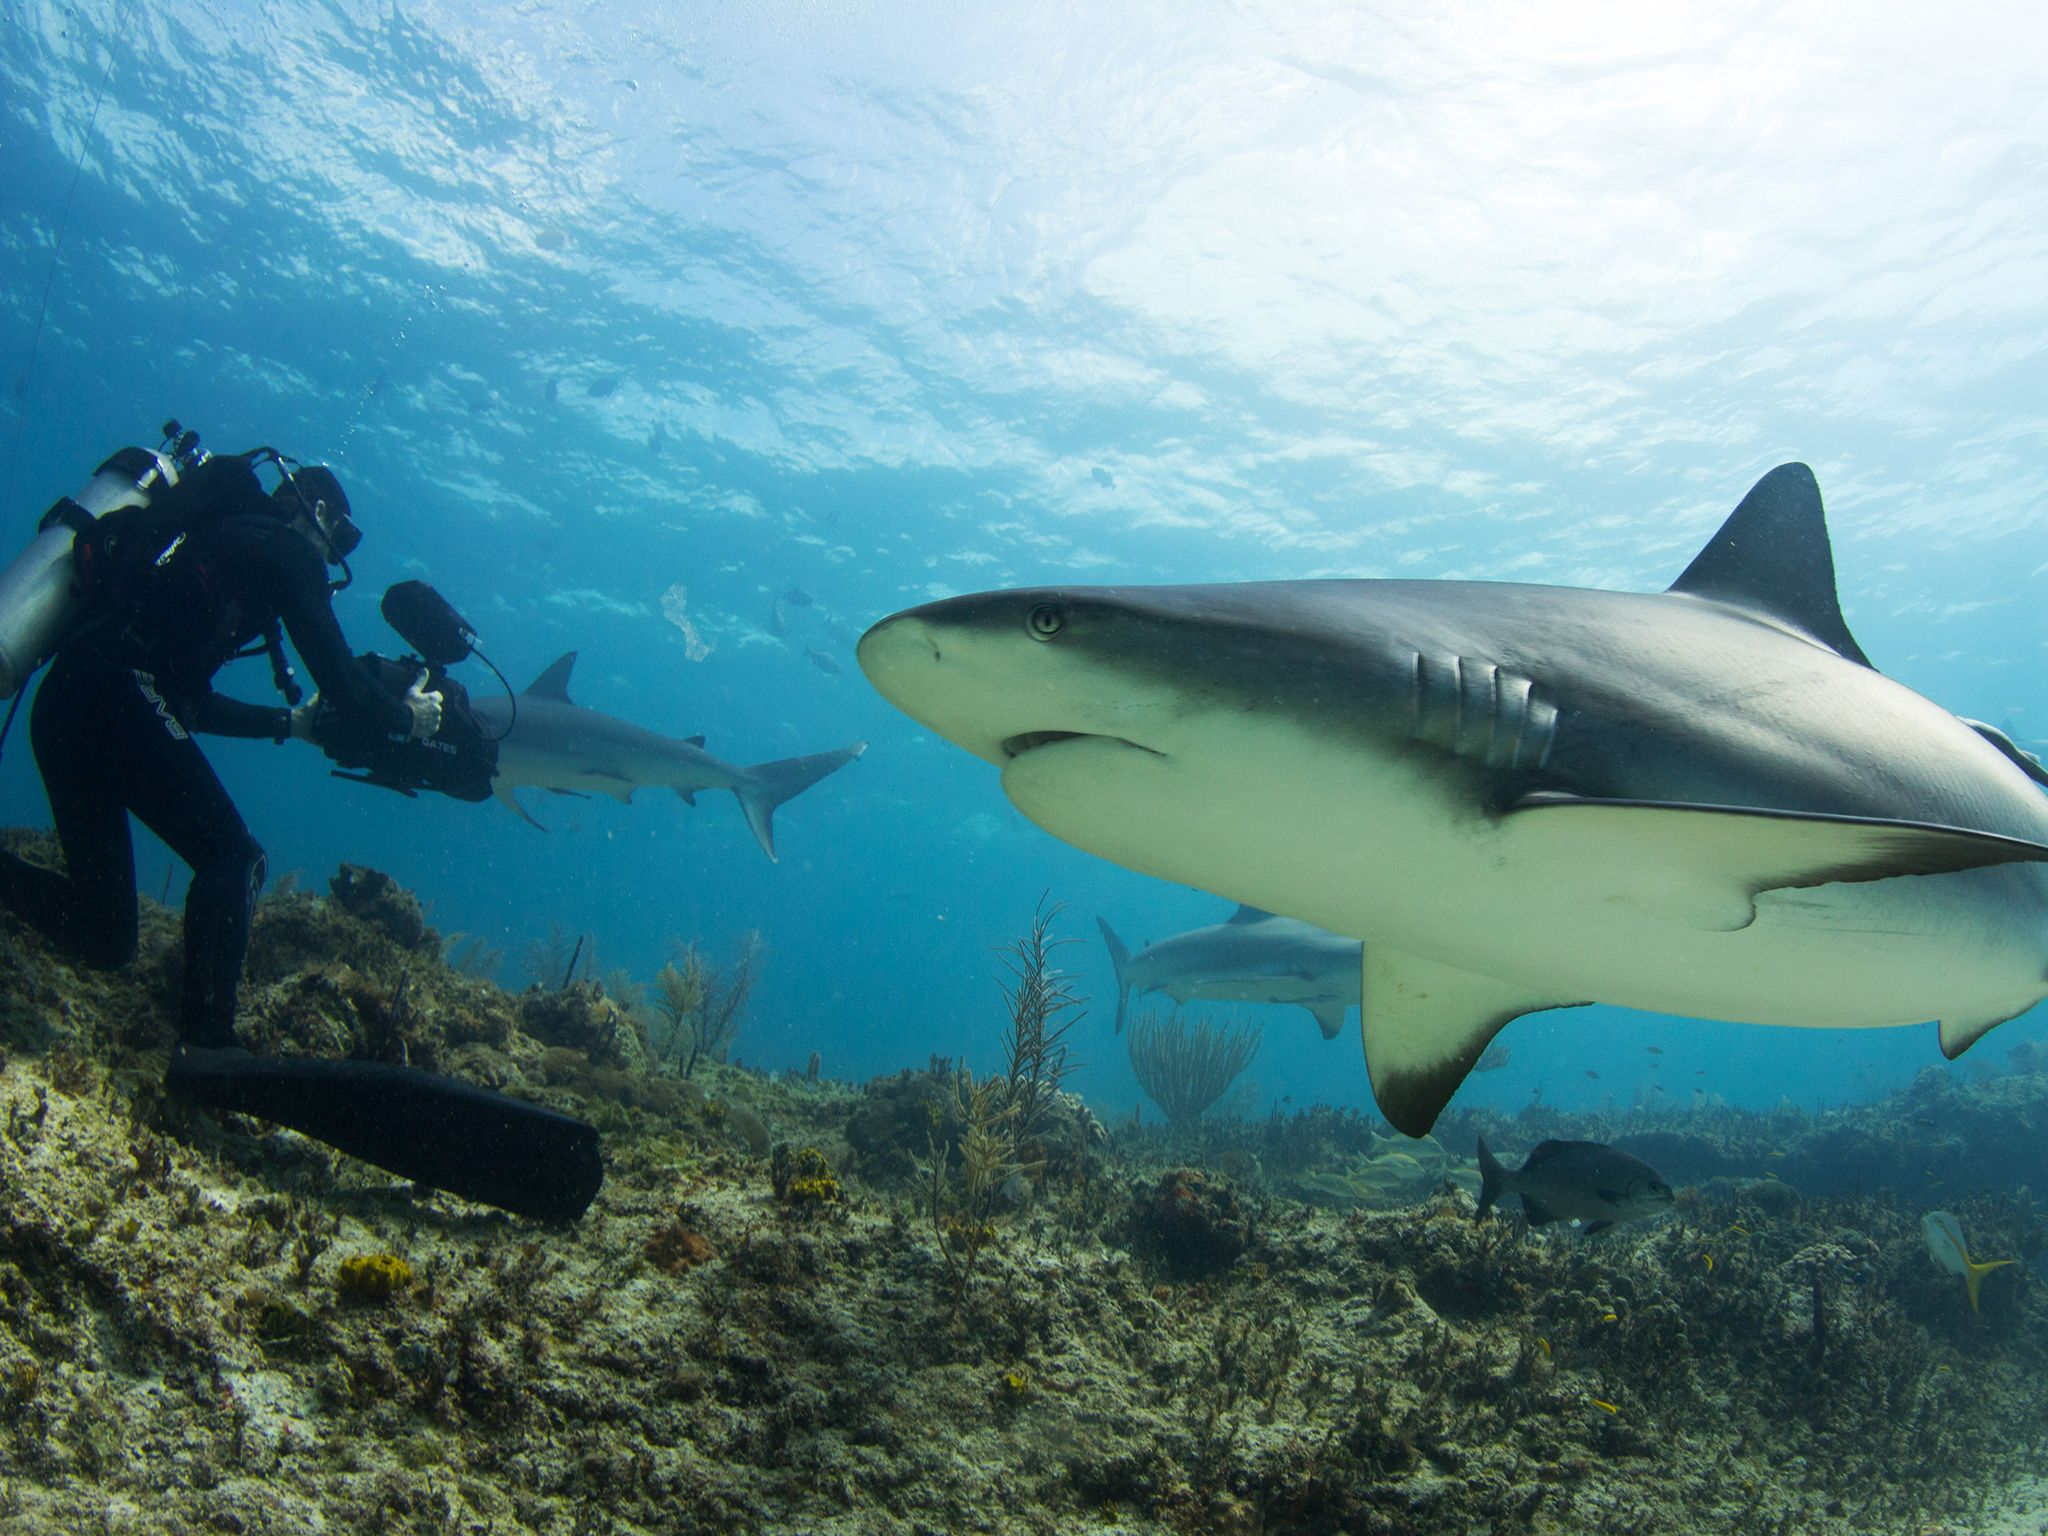 Palmyra Atoll: Tiger Shark and camerman. Dr. M. Sanjayan dives deep into the oceans to find out... [Photo of the day - March 2015]